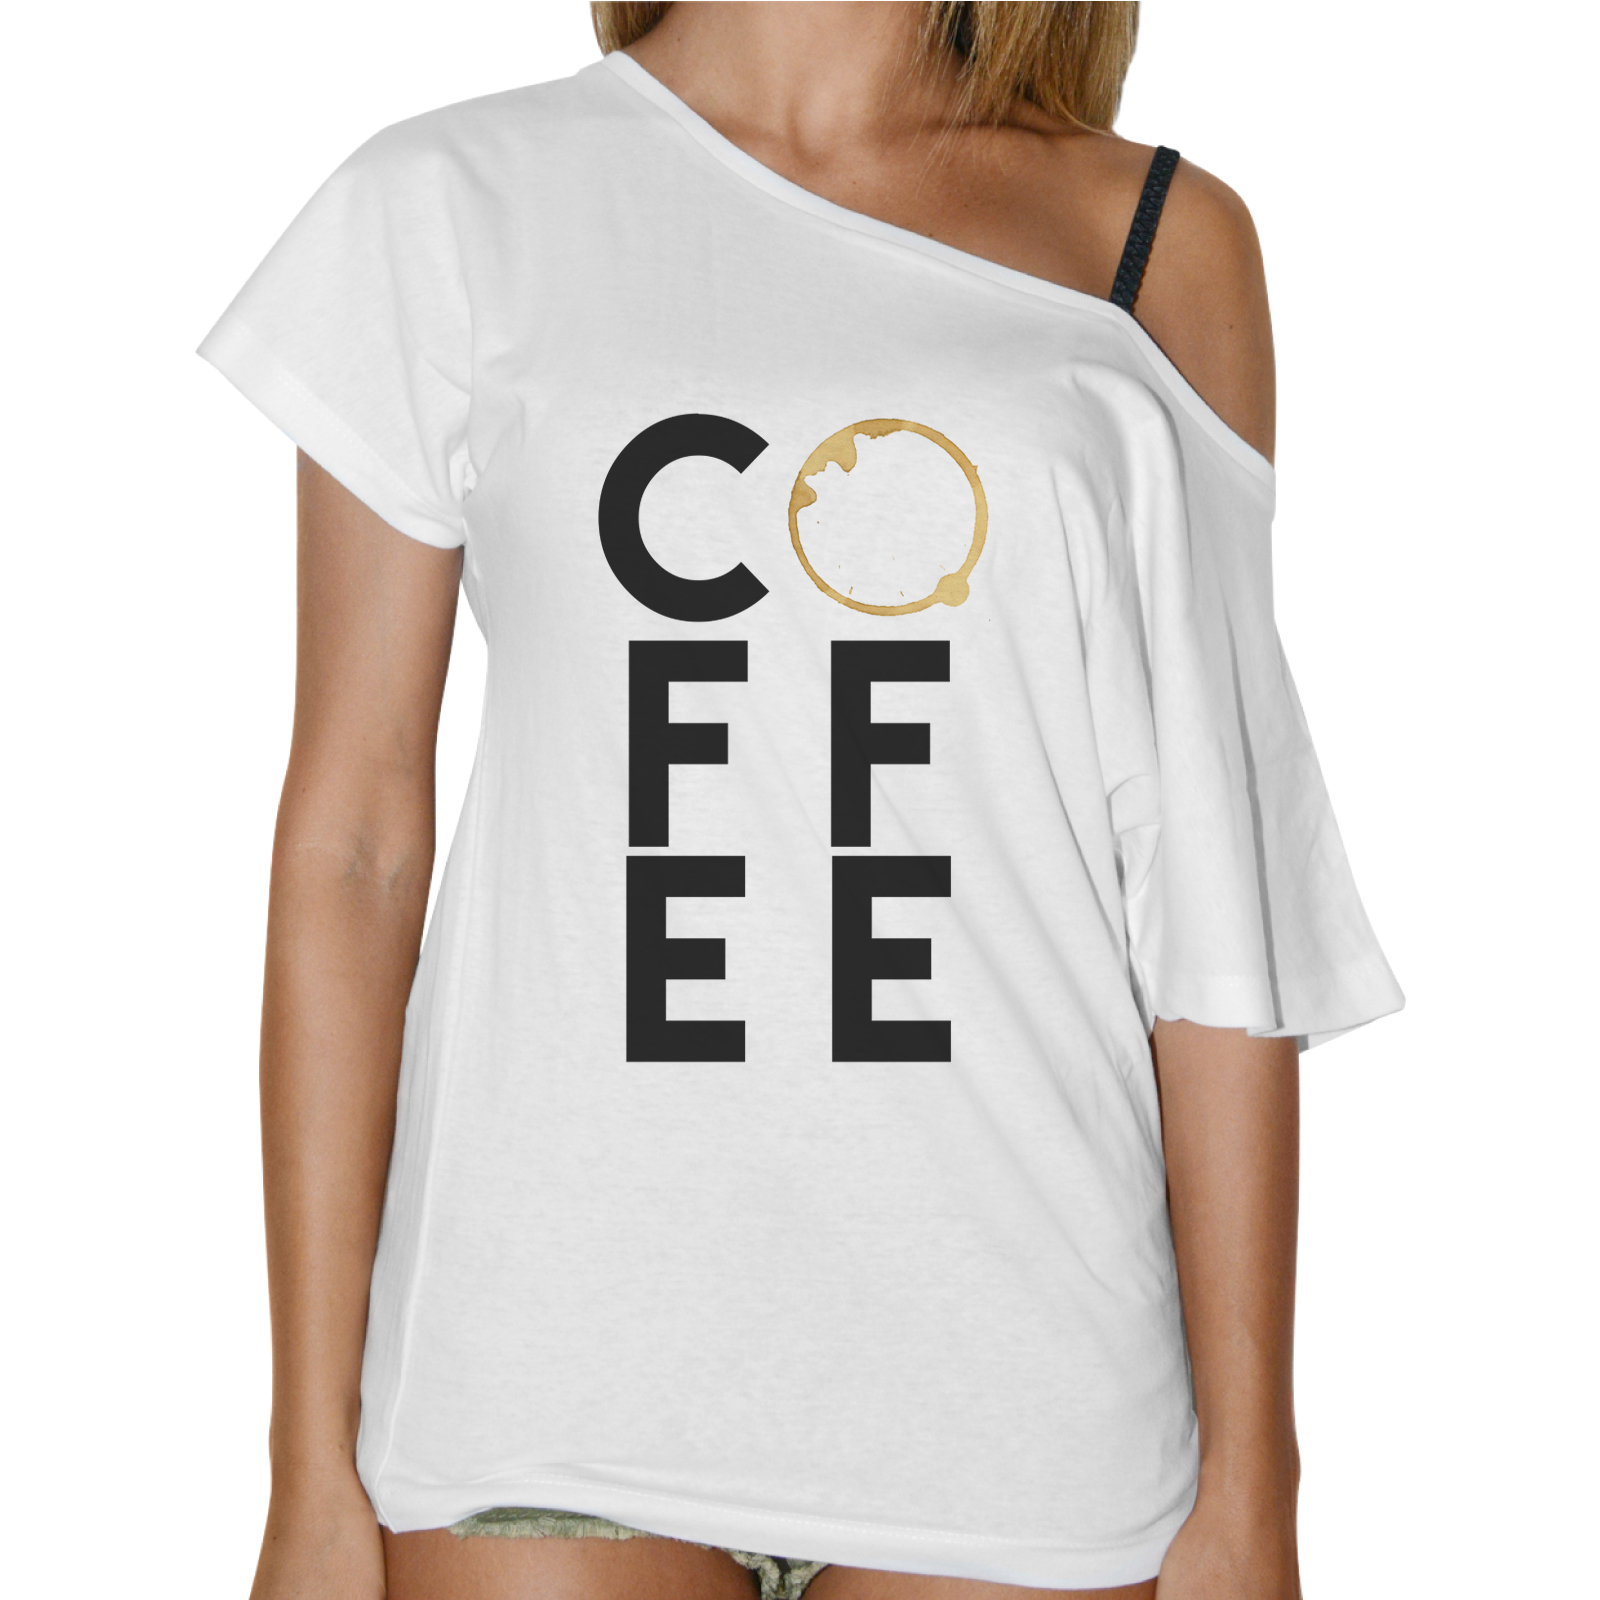 T-Shirt Donna Collo Barca COFFEE